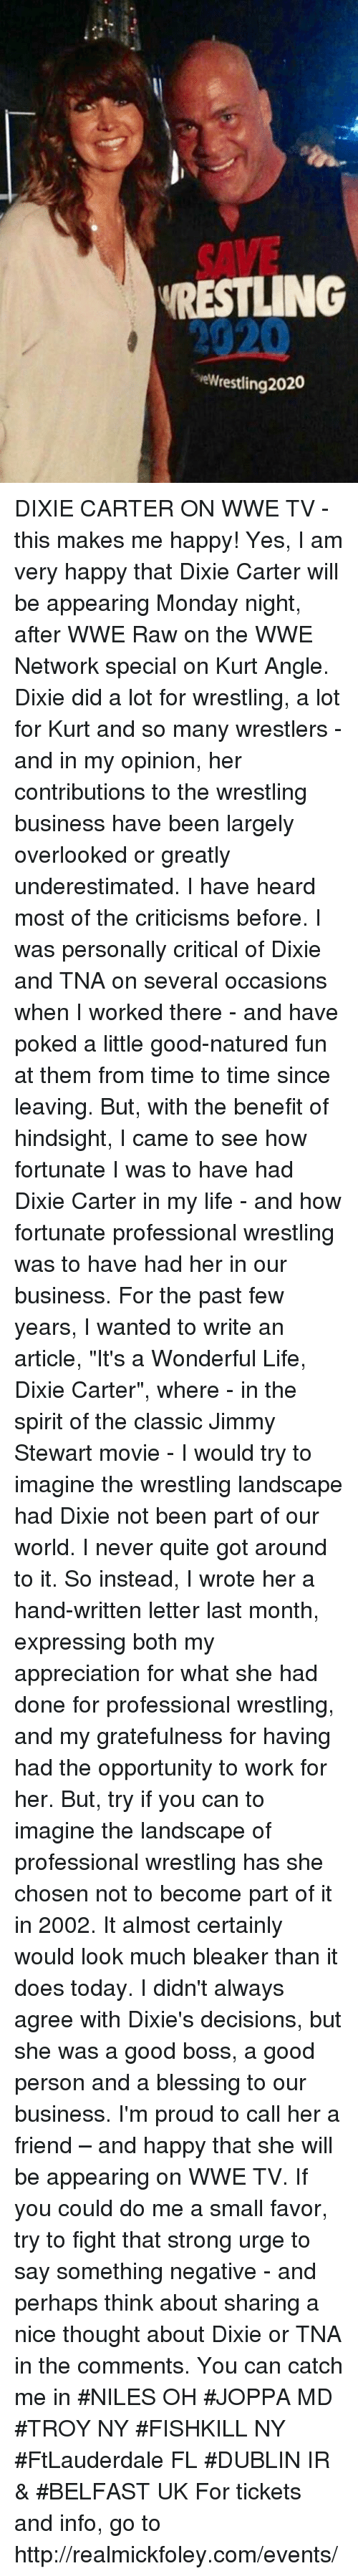 """Life, Memes, and Wrestling: SAVE  RESTLING  2020  eWrestling 2020 DIXIE CARTER ON WWE TV - this makes me happy!  Yes, I am very happy that Dixie Carter will be appearing Monday night, after WWE Raw on the WWE Network special on Kurt Angle. Dixie did a lot for wrestling, a lot for Kurt and so many wrestlers - and in my opinion, her contributions to the wrestling business have been largely overlooked or greatly underestimated.   I have heard  most of the criticisms before. I was personally critical of Dixie and TNA on several occasions when I worked there - and have poked a little good-natured fun at them from time to time since leaving.  But, with the benefit of hindsight, I came to see how fortunate I was to have had Dixie Carter in my life -  and how fortunate professional wrestling was to have had her in our business.    For the past few years, I  wanted to write an article, """"It's a Wonderful Life, Dixie Carter"""",  where - in the spirit of the classic Jimmy Stewart movie - I would try to imagine the wrestling landscape had Dixie not been part of our world.  I never quite got around to it.  So instead, I wrote her a hand-written letter last month,  expressing both my appreciation for what she had done for professional wrestling, and my gratefulness for having had the opportunity to work for her.  But, try if you can to imagine the landscape of professional wrestling has she chosen not to become part of it in 2002. It almost certainly  would look much bleaker than it does today. I didn't always agree with Dixie's decisions, but she was a good boss, a good person and a blessing to our business. I'm  proud to call her a friend – and happy that she will be appearing on WWE TV.  If you could do me a small favor, try to fight that strong urge to say something negative - and perhaps think about sharing a nice thought about Dixie or TNA in the comments.   You can catch me in #NILES OH #JOPPA MD #TROY NY #FISHKILL NY #FtLauderdale FL #DUBLIN IR & #BELFAST UK For tickets and """